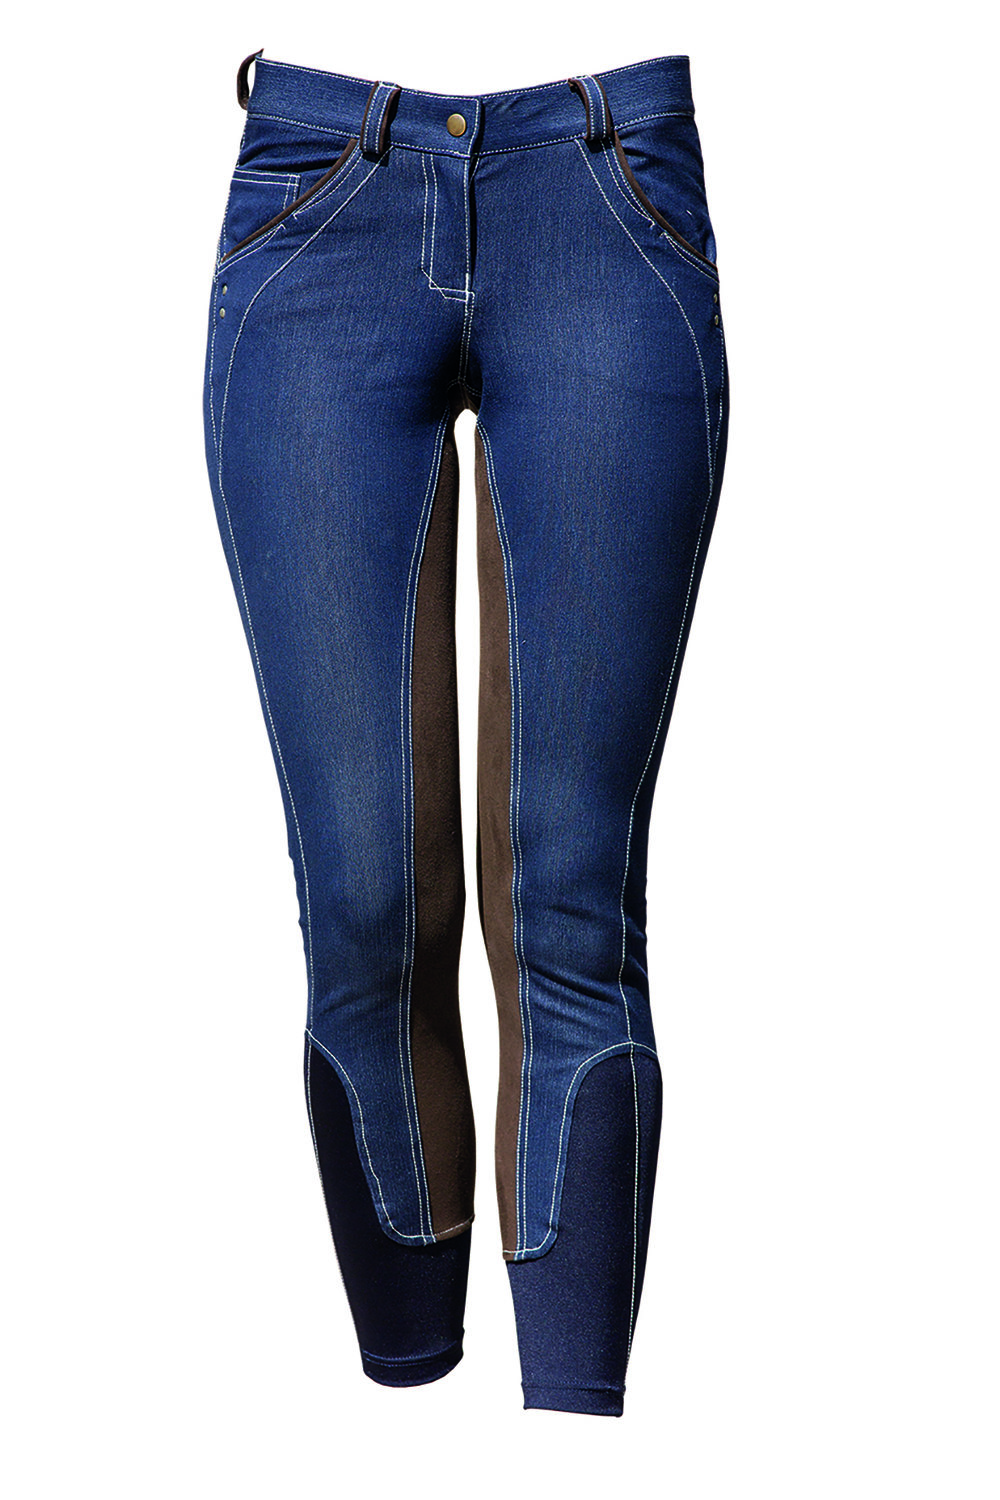 LADIES-denim-breeches